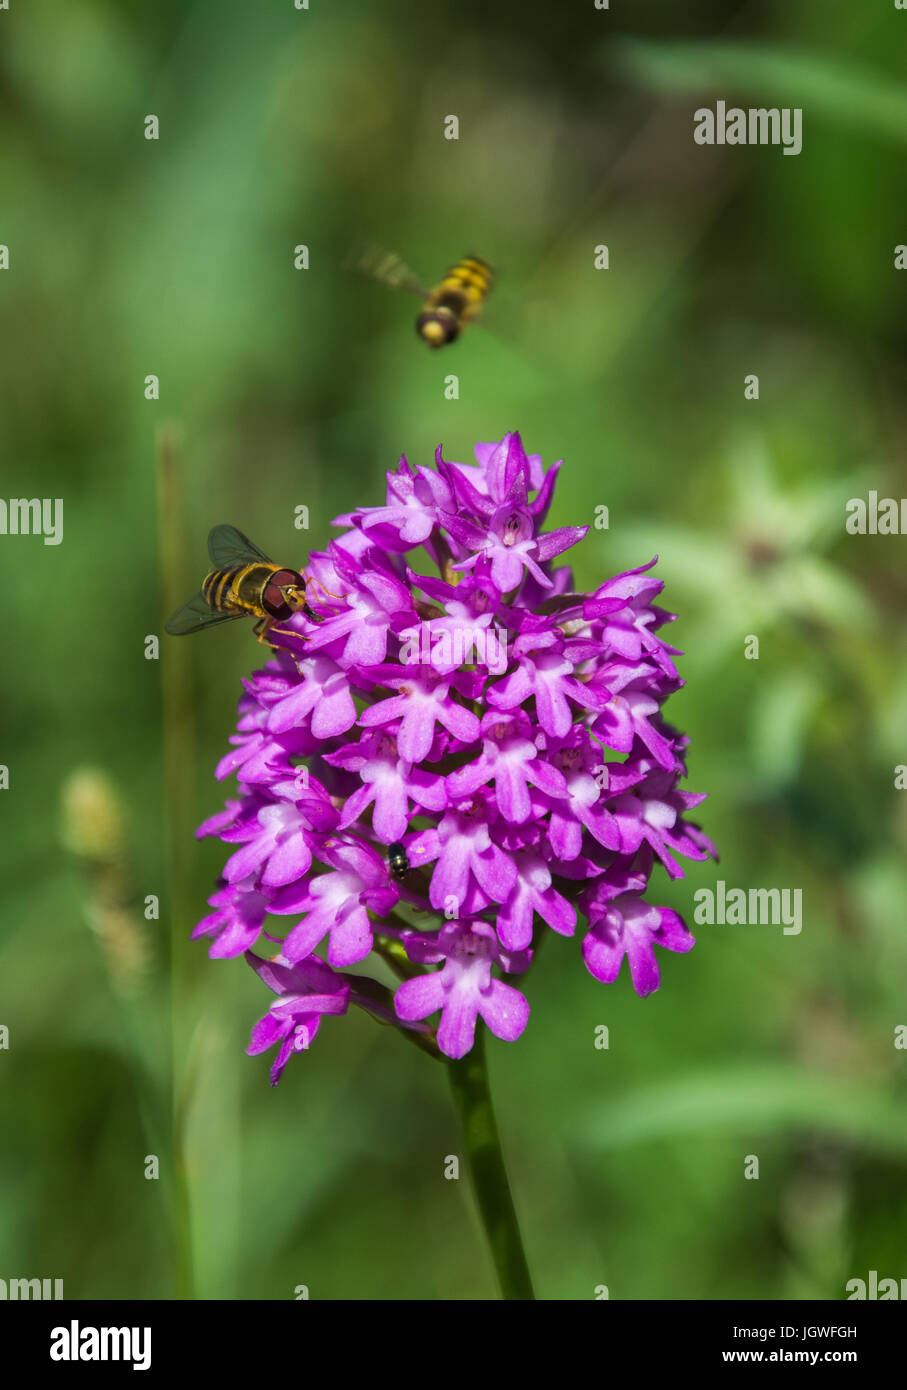 Flowering Pyramidal Orchid (Anacamptis pyramidalis) with a Hoverfly (Syrphidae, Flower Fly, Syrphid Fly) feeding - Stock Image